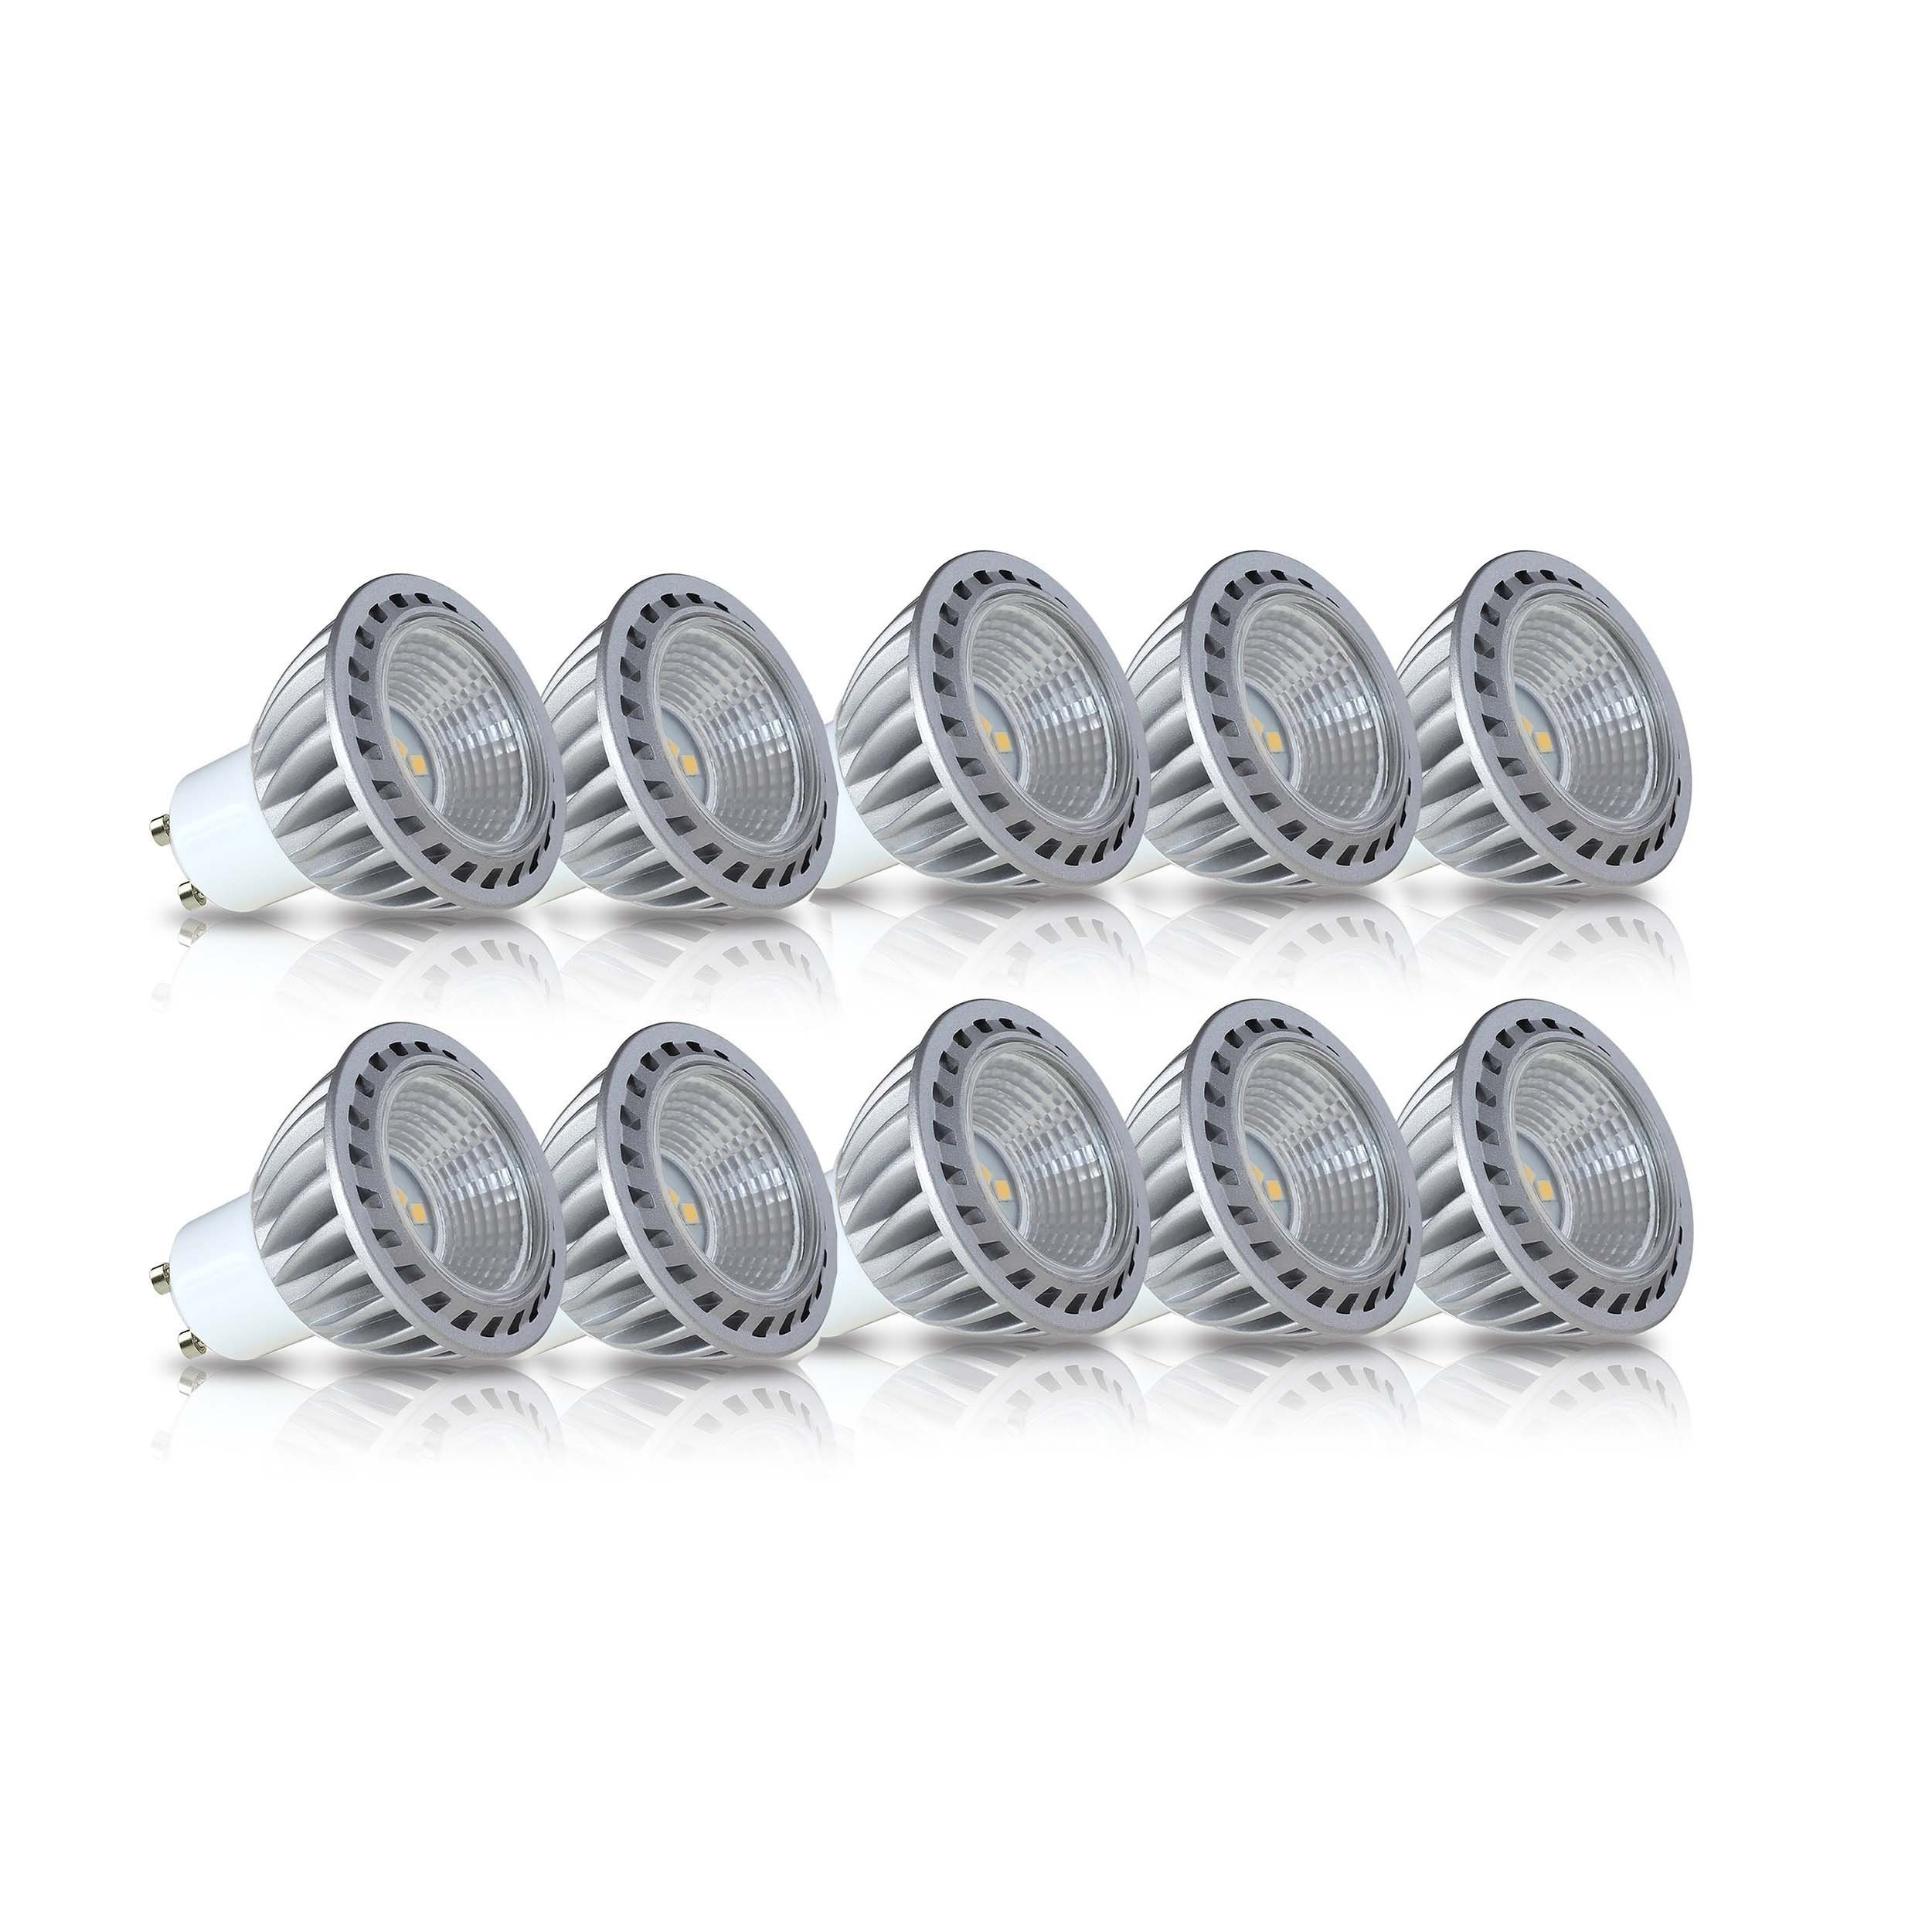 LAMPAOUS GU10 Led Light Bulbs 50W Equivalent, 100% Aluminum Reflector 2700K Warm White, 40 Degree Beam Angle, CRI>85, Pack of 10